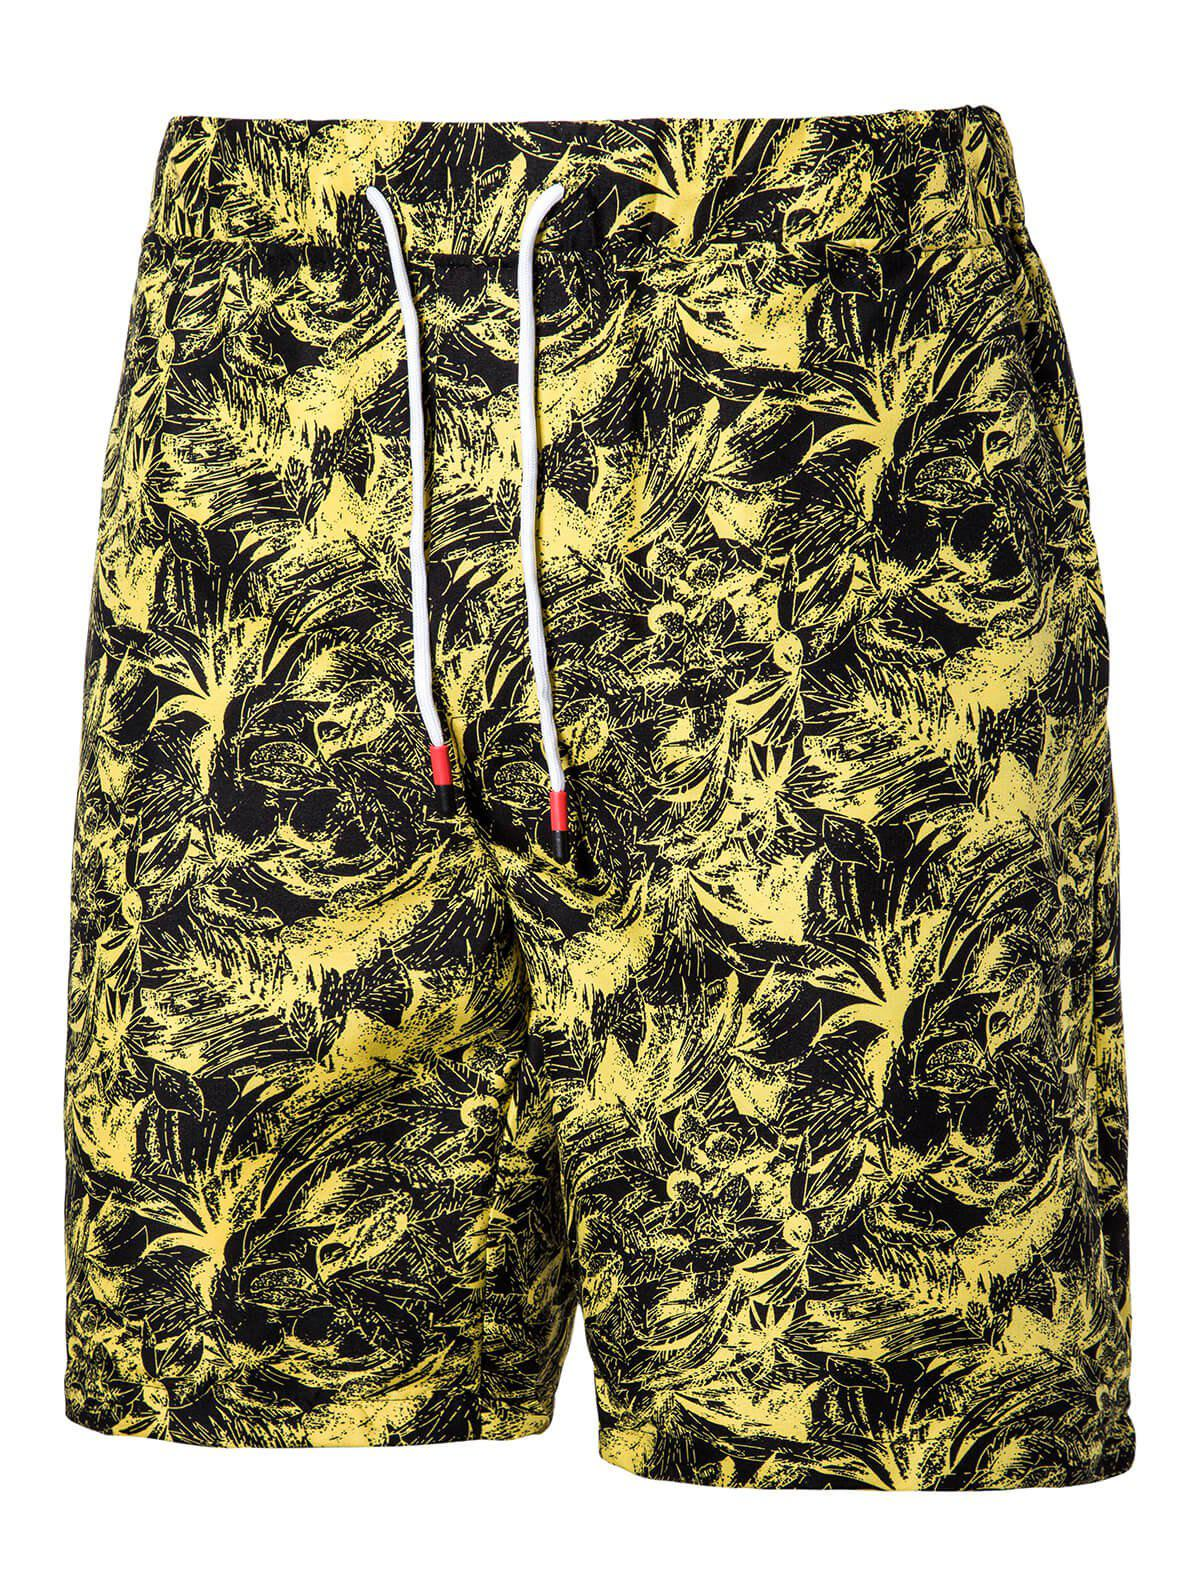 Sale Floral Printed Drawstring Beach Shorts